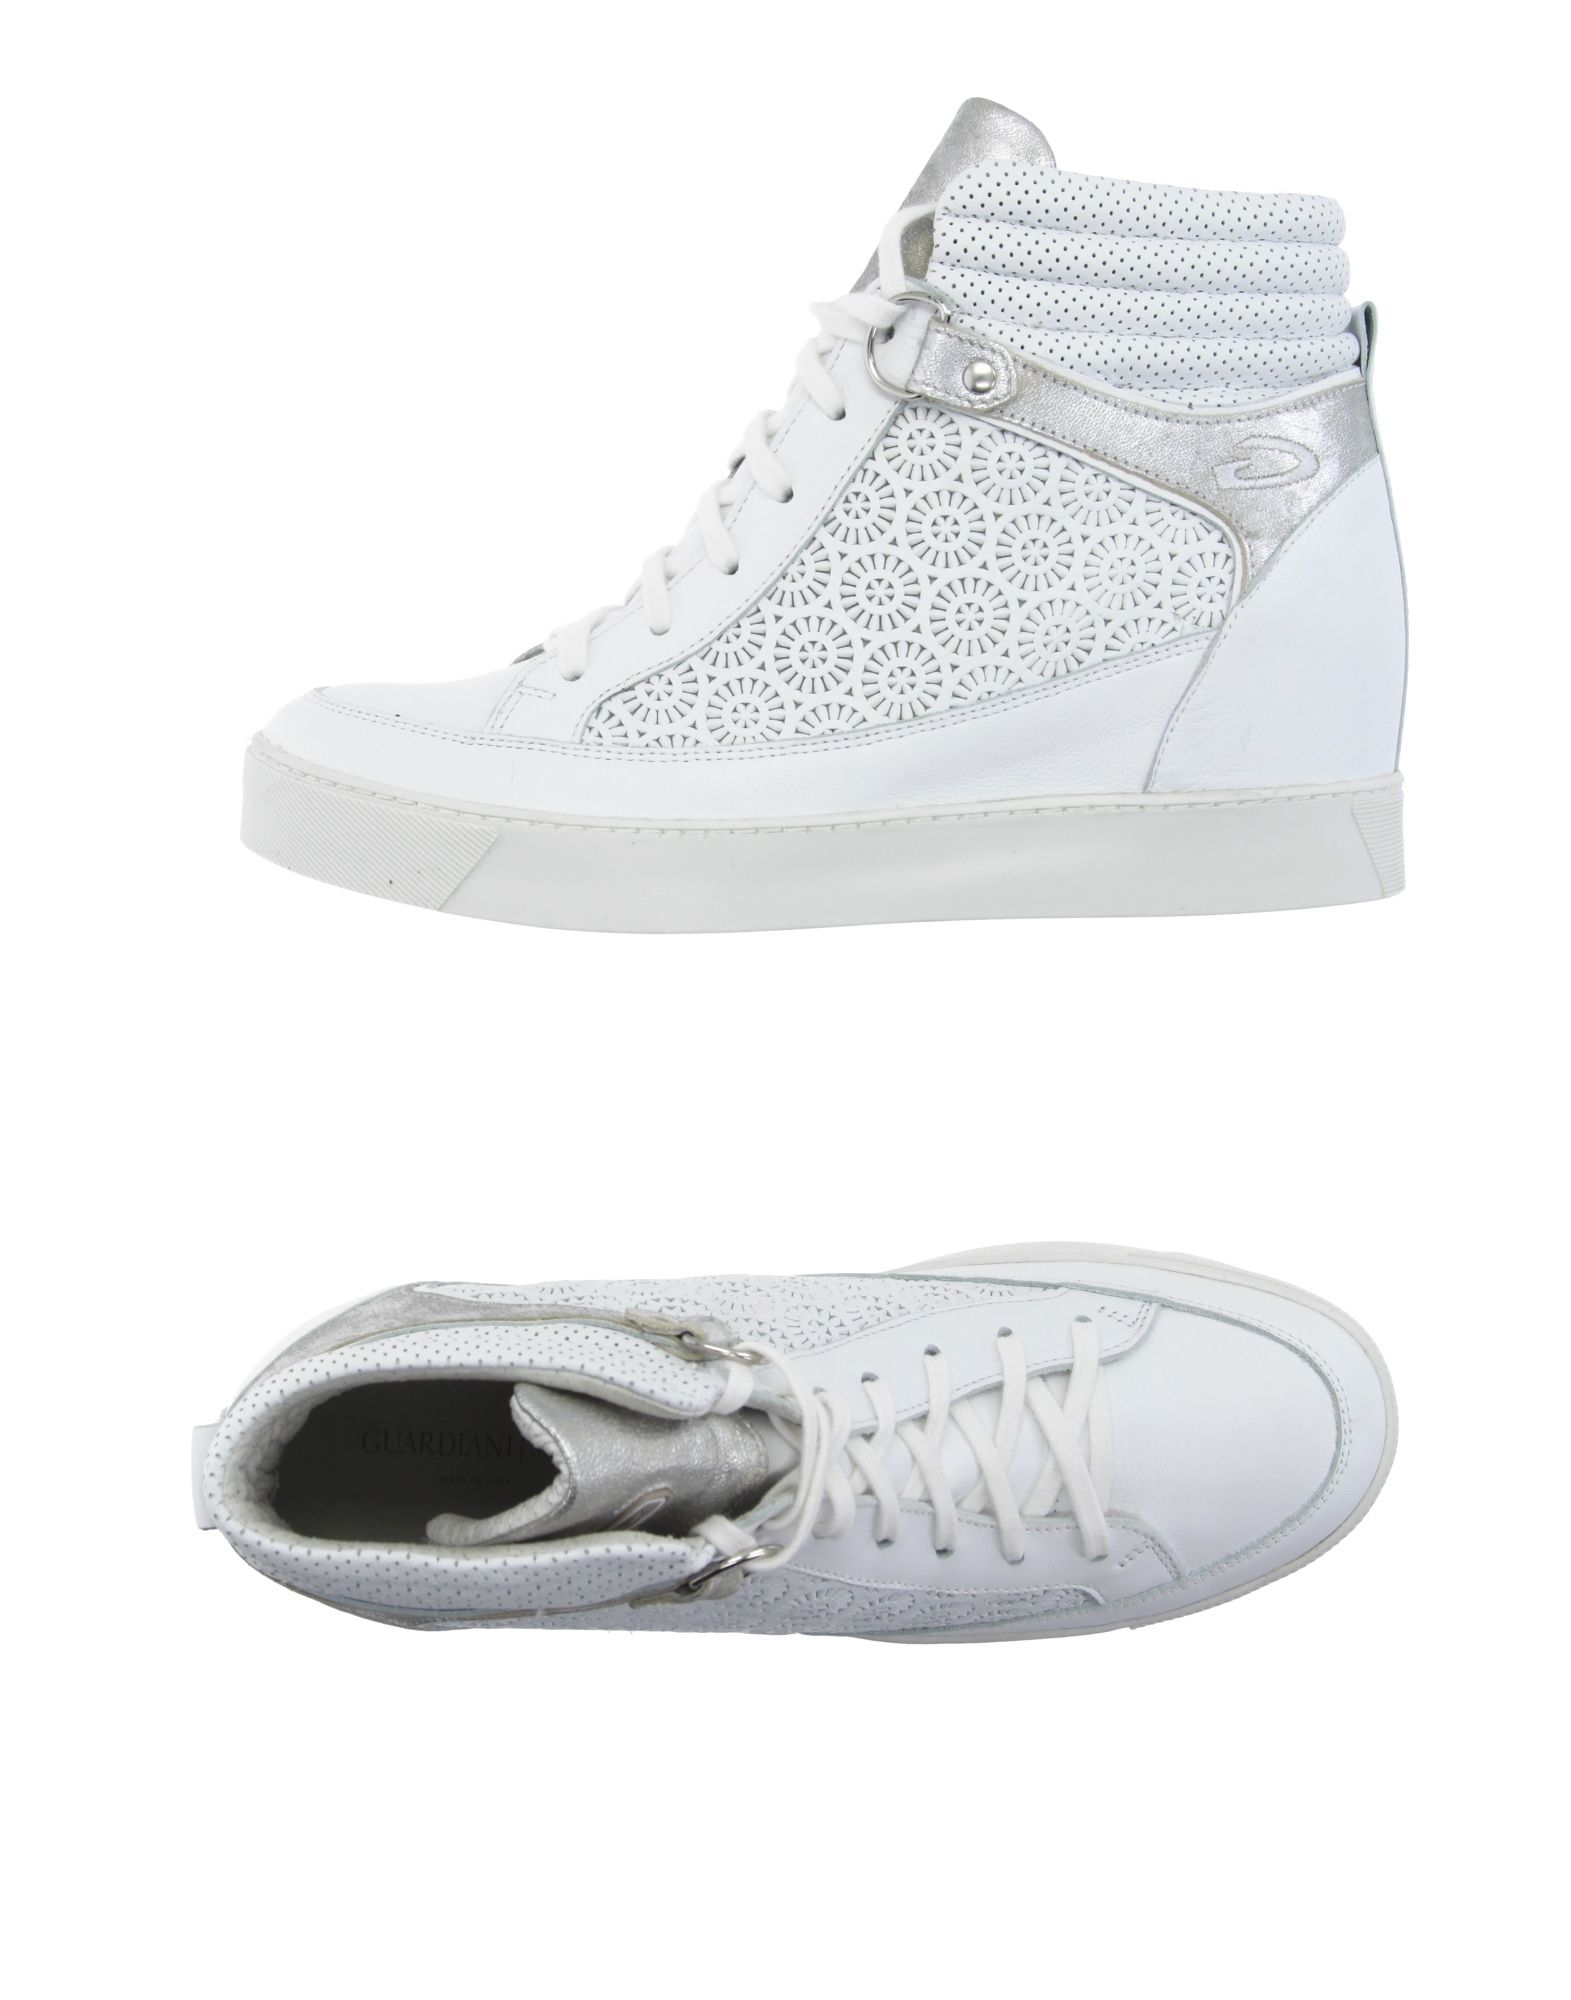 ALBERTO GUARDIANI Sneakers in White